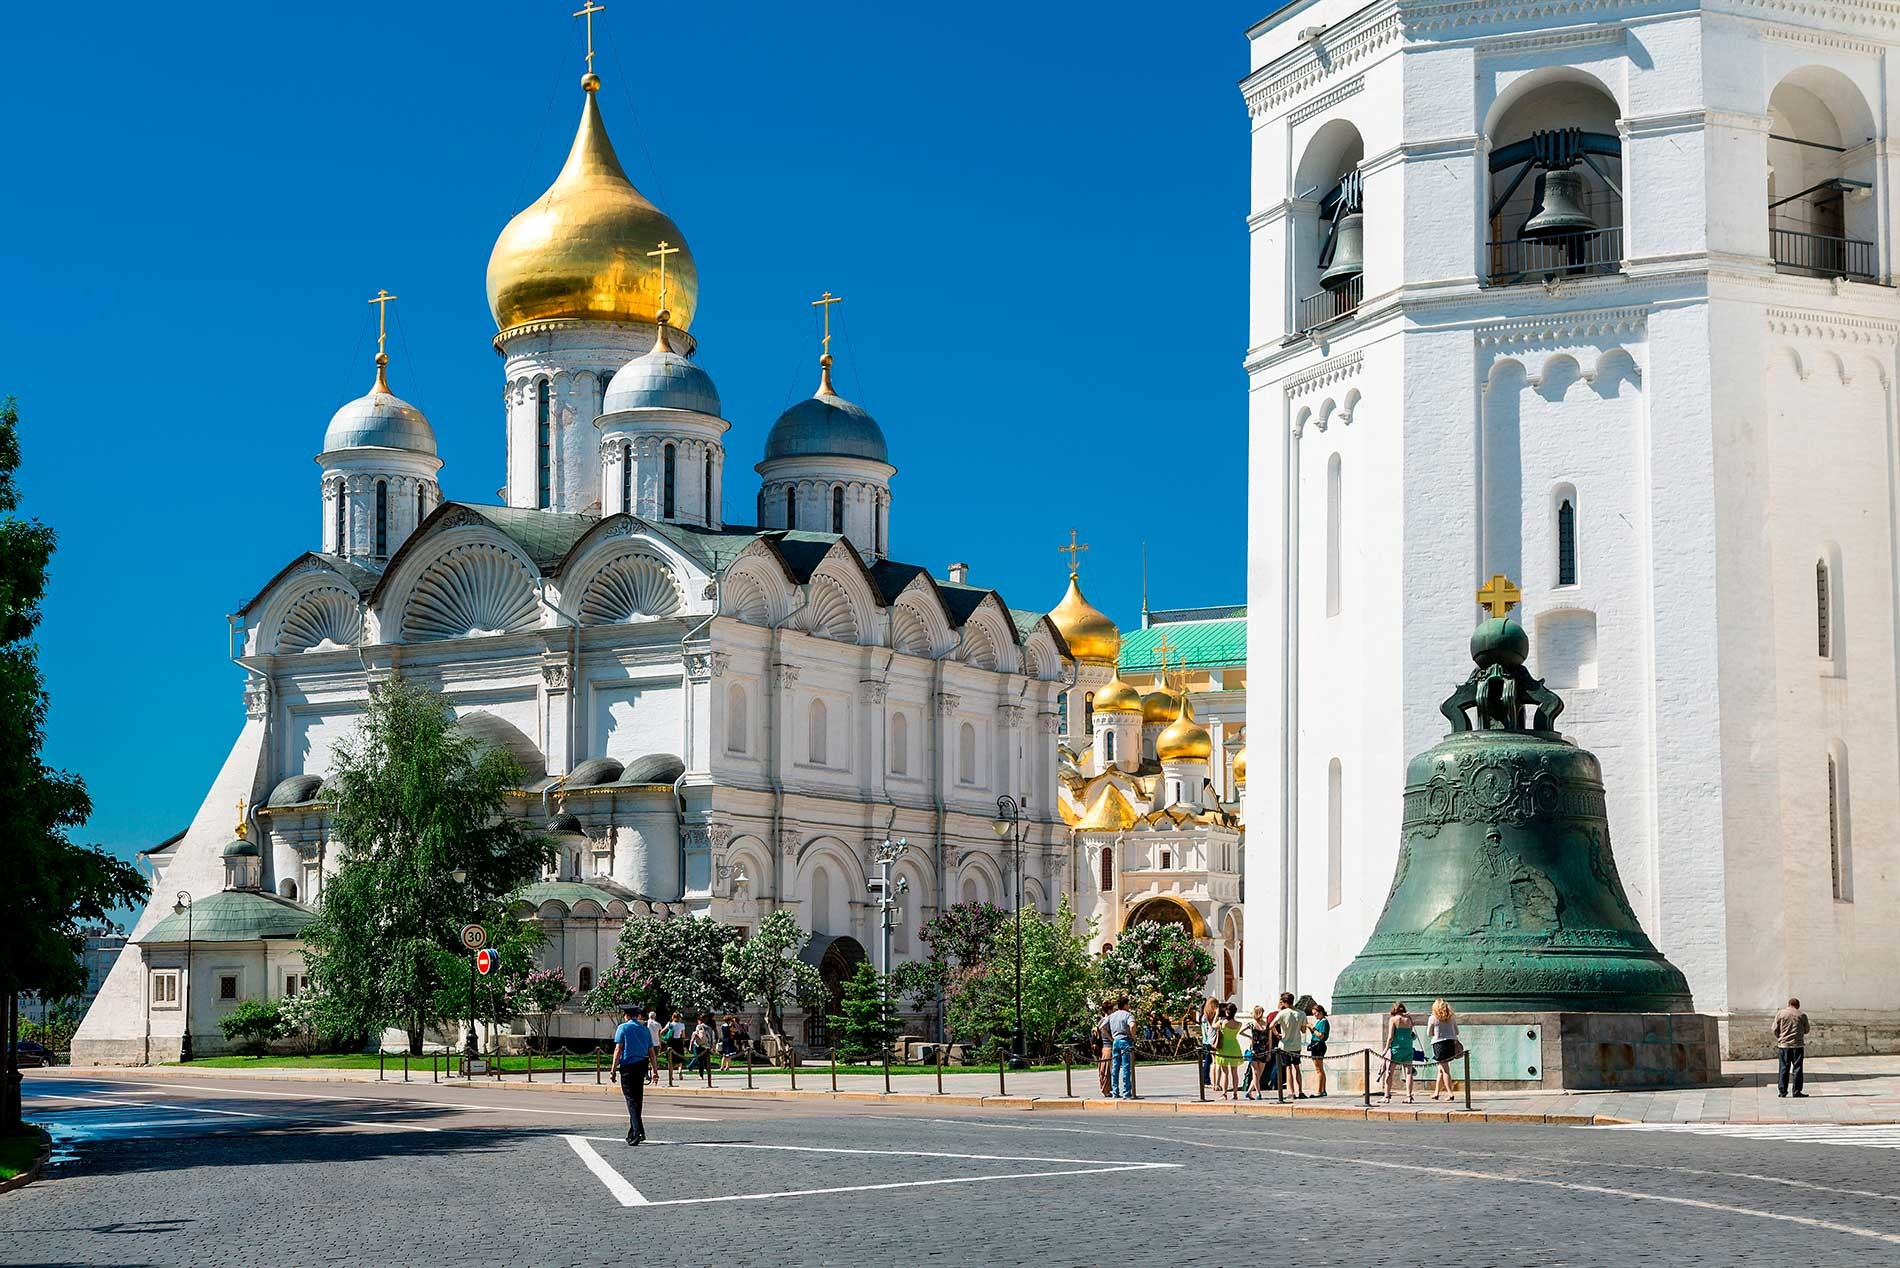 L-R: Cathedral of the Archangel, Cathedral of the Annunciation, Ivan the Great Bell Tower, Tsar Bell